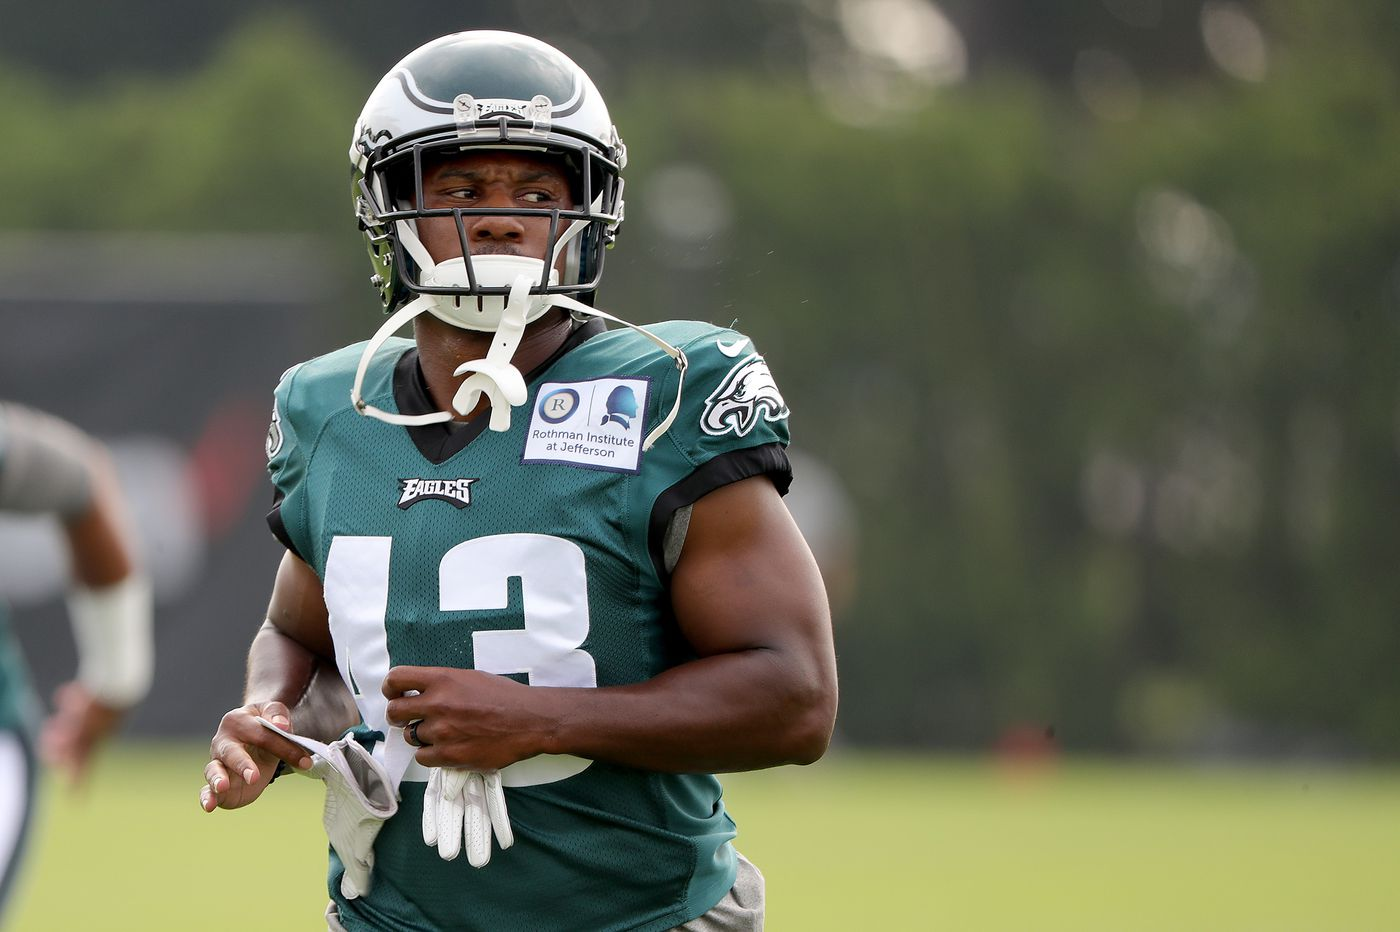 Will Eagles' Darren Sproles make the Hall of Fame?